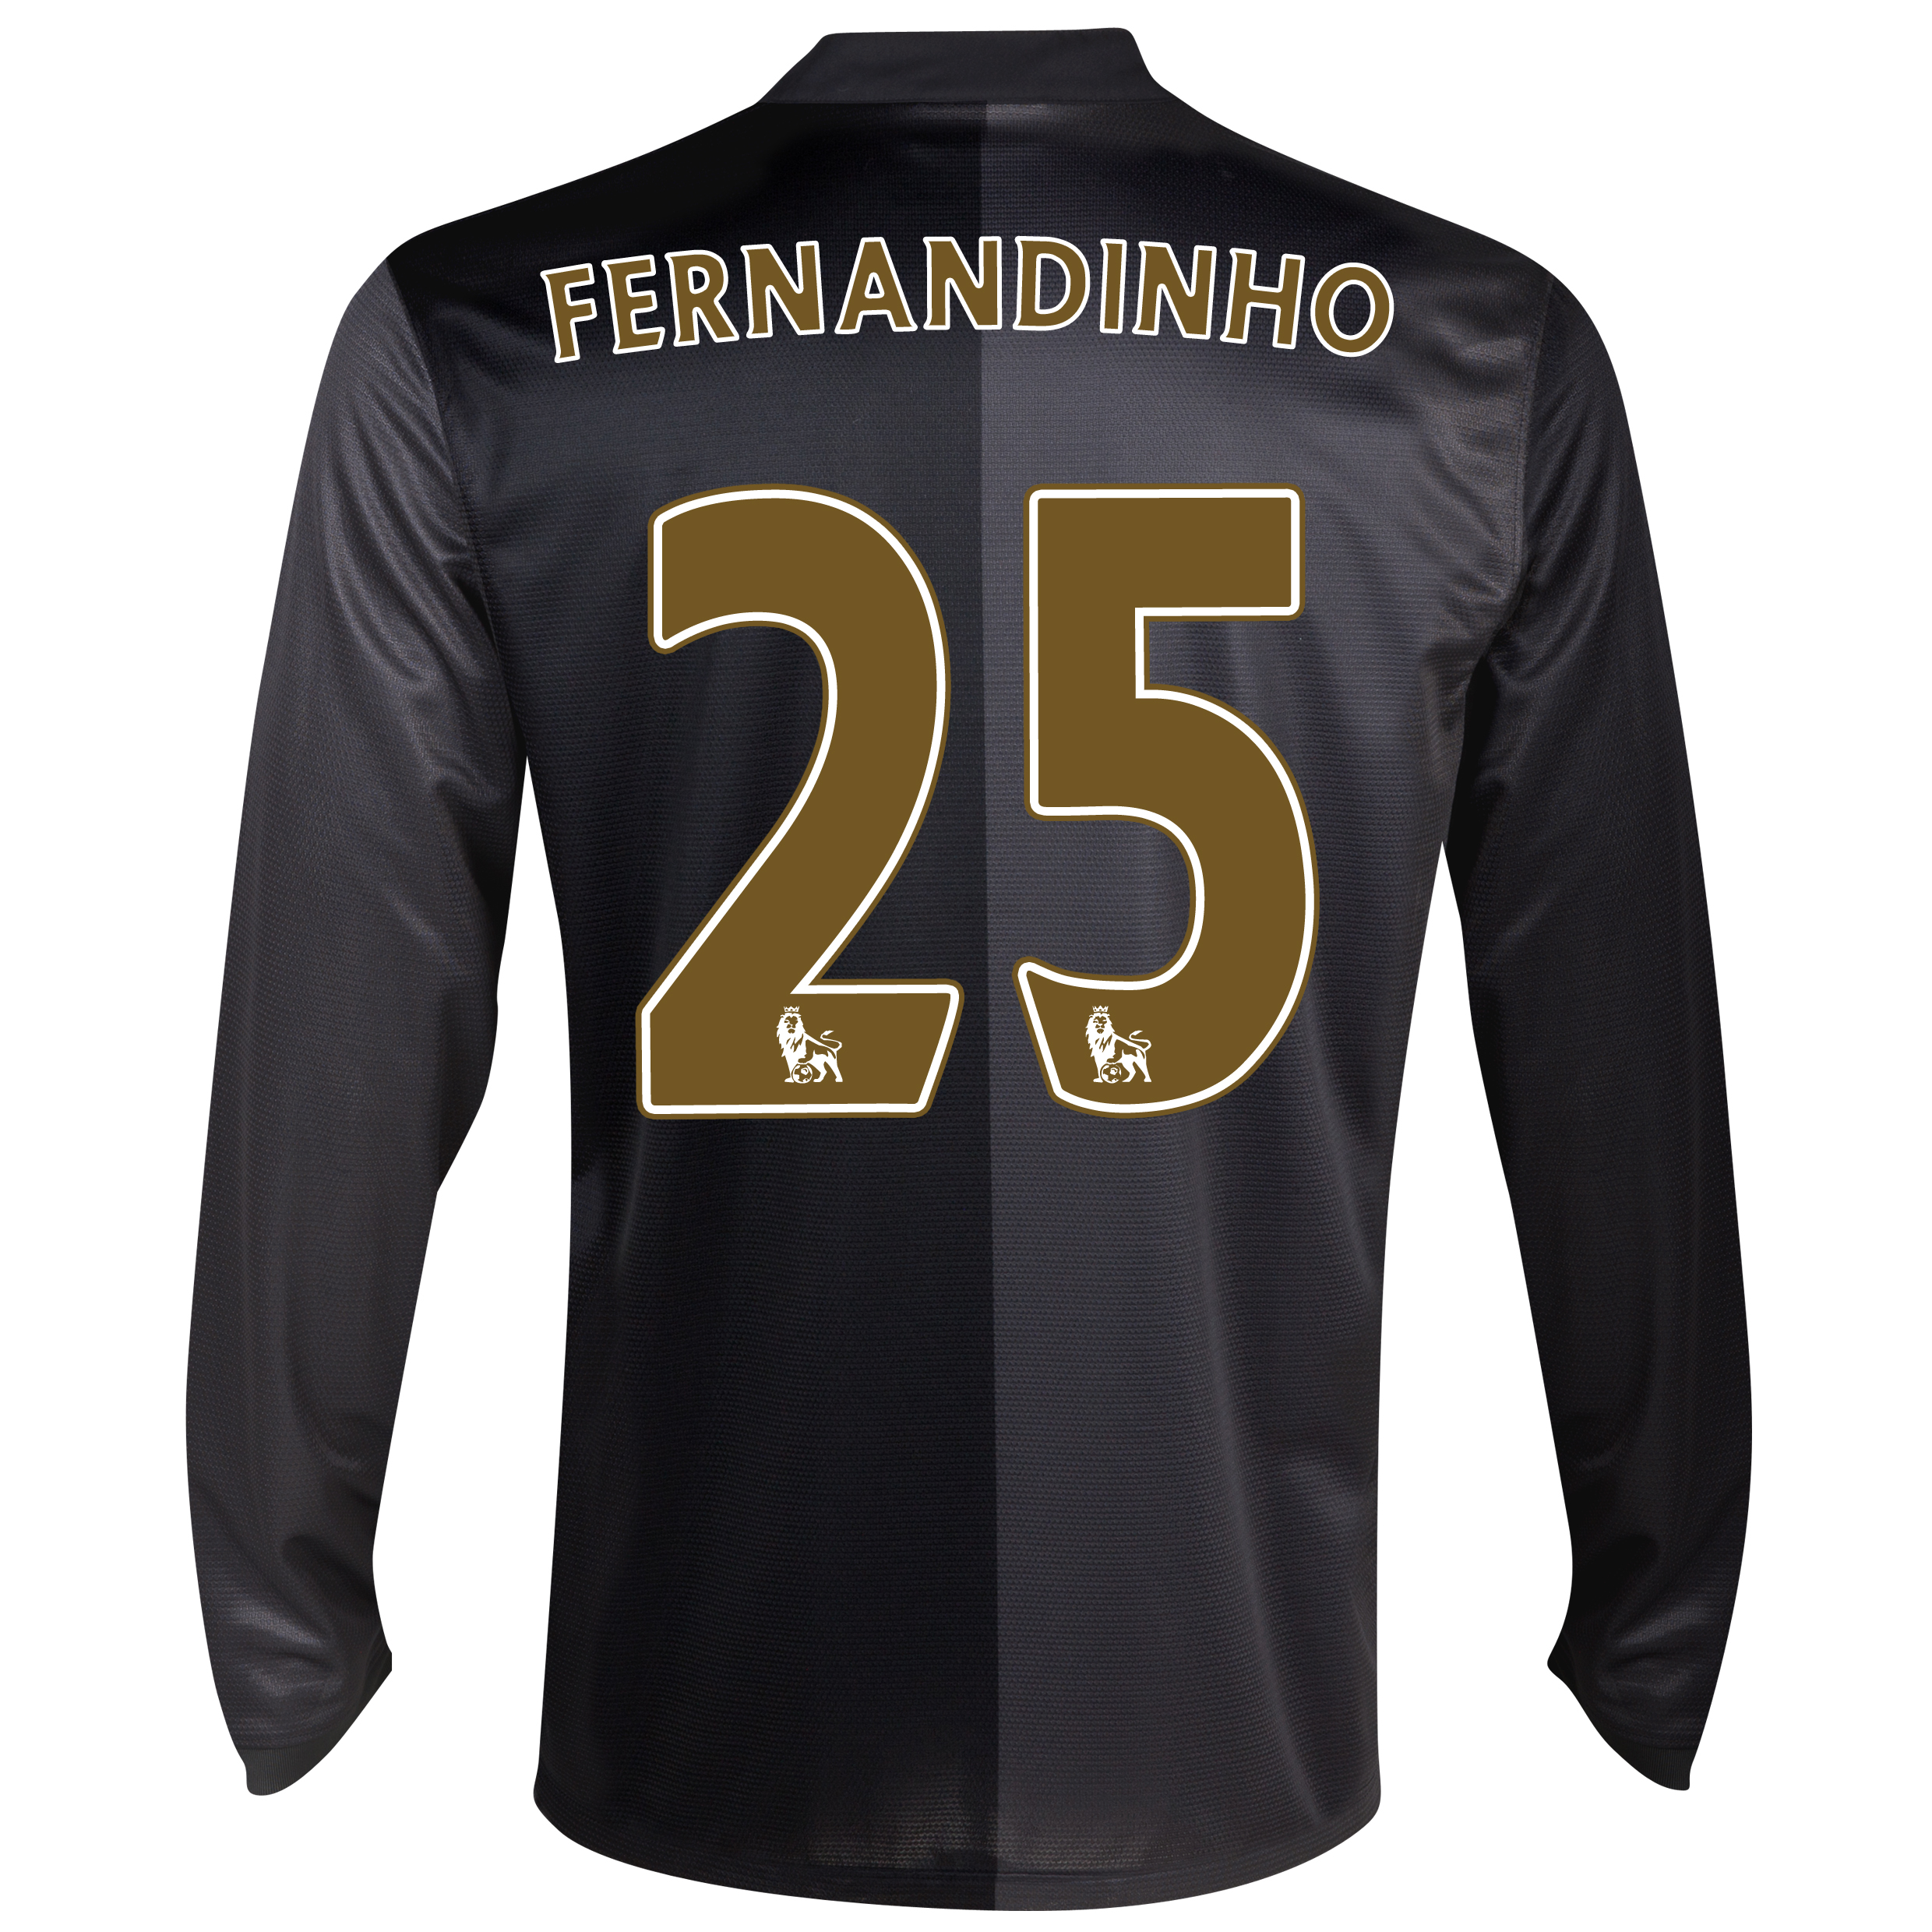 Manchester City Away Shirt 2013/14 - Long Sleeved with Fernandinho 25 printing